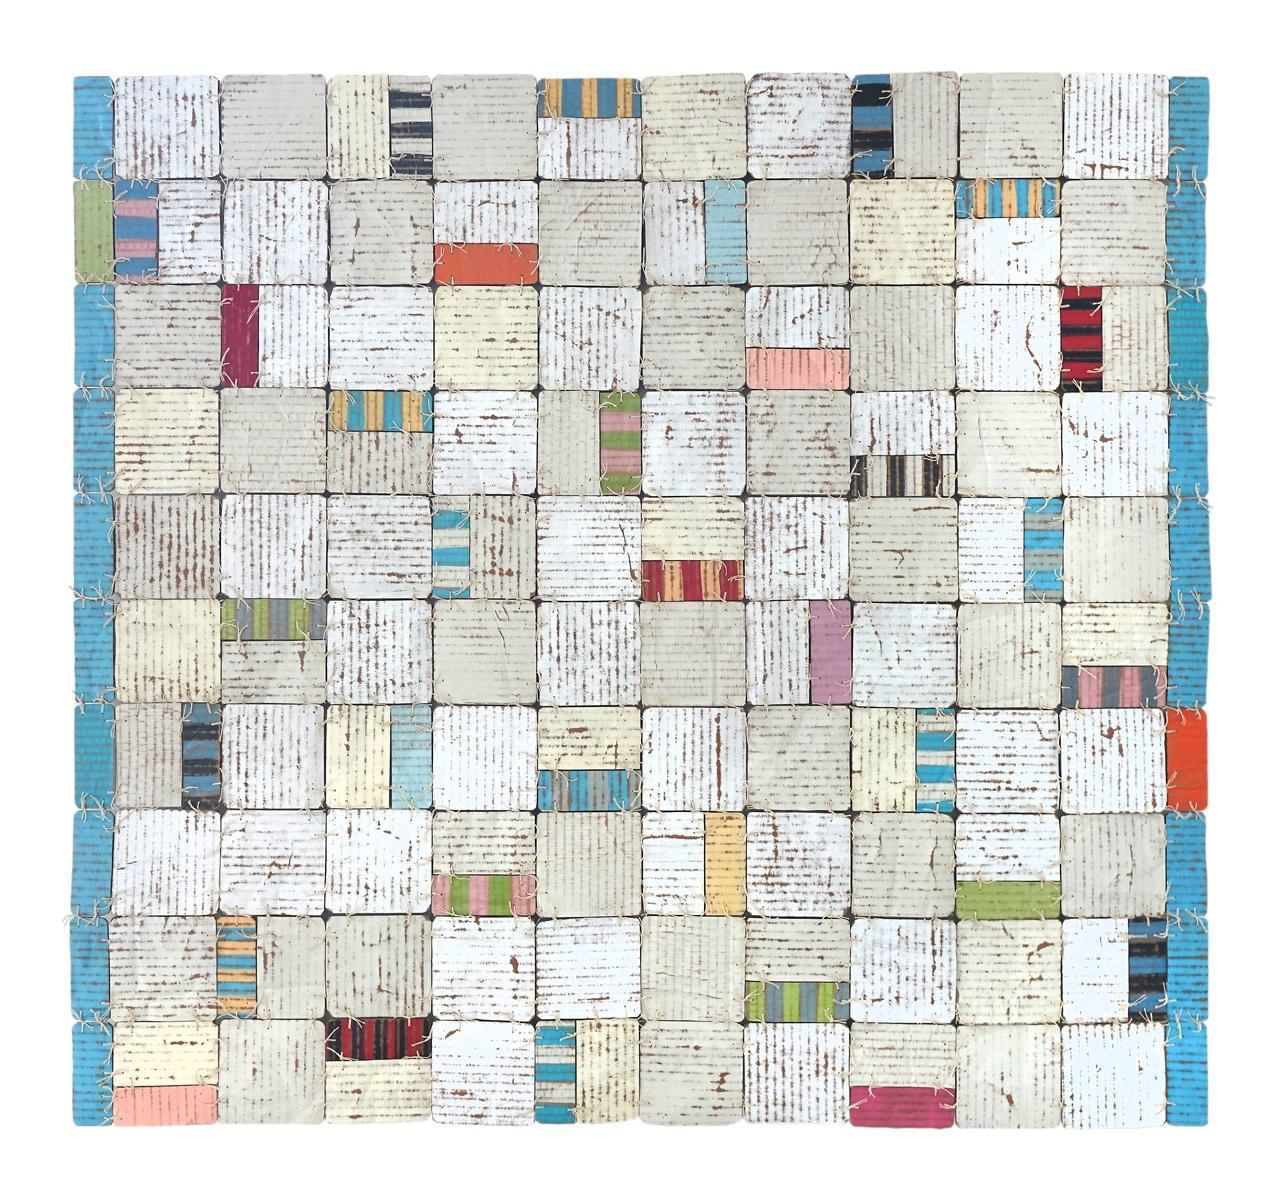 Nettie Jane (Colorful Striped Mixed Media Abstract Check Pattern Stitched Work)